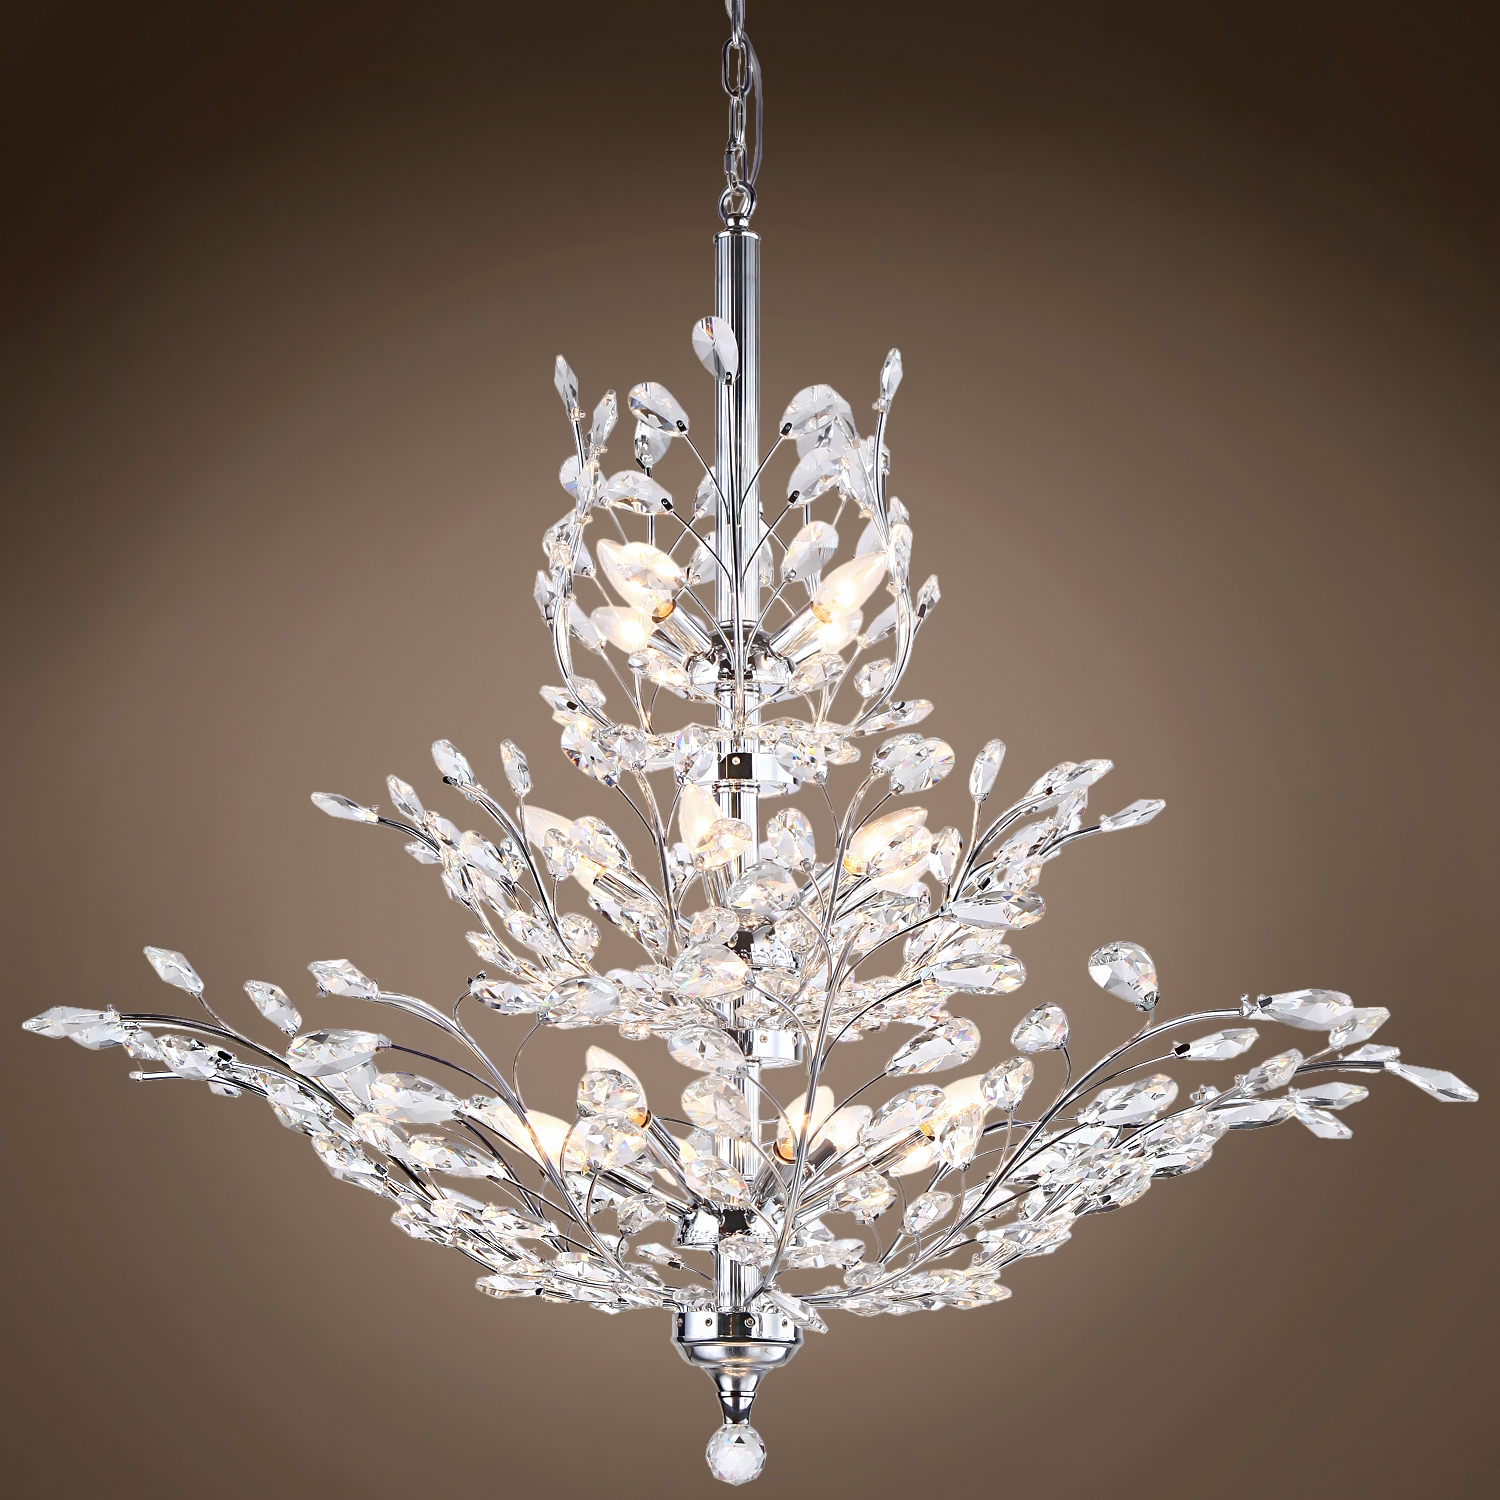 Joshua Marshal 700109 Branch Of Light 13 Light Chrome Chandelier Regarding Branch Crystal Chandelier (Image 11 of 15)